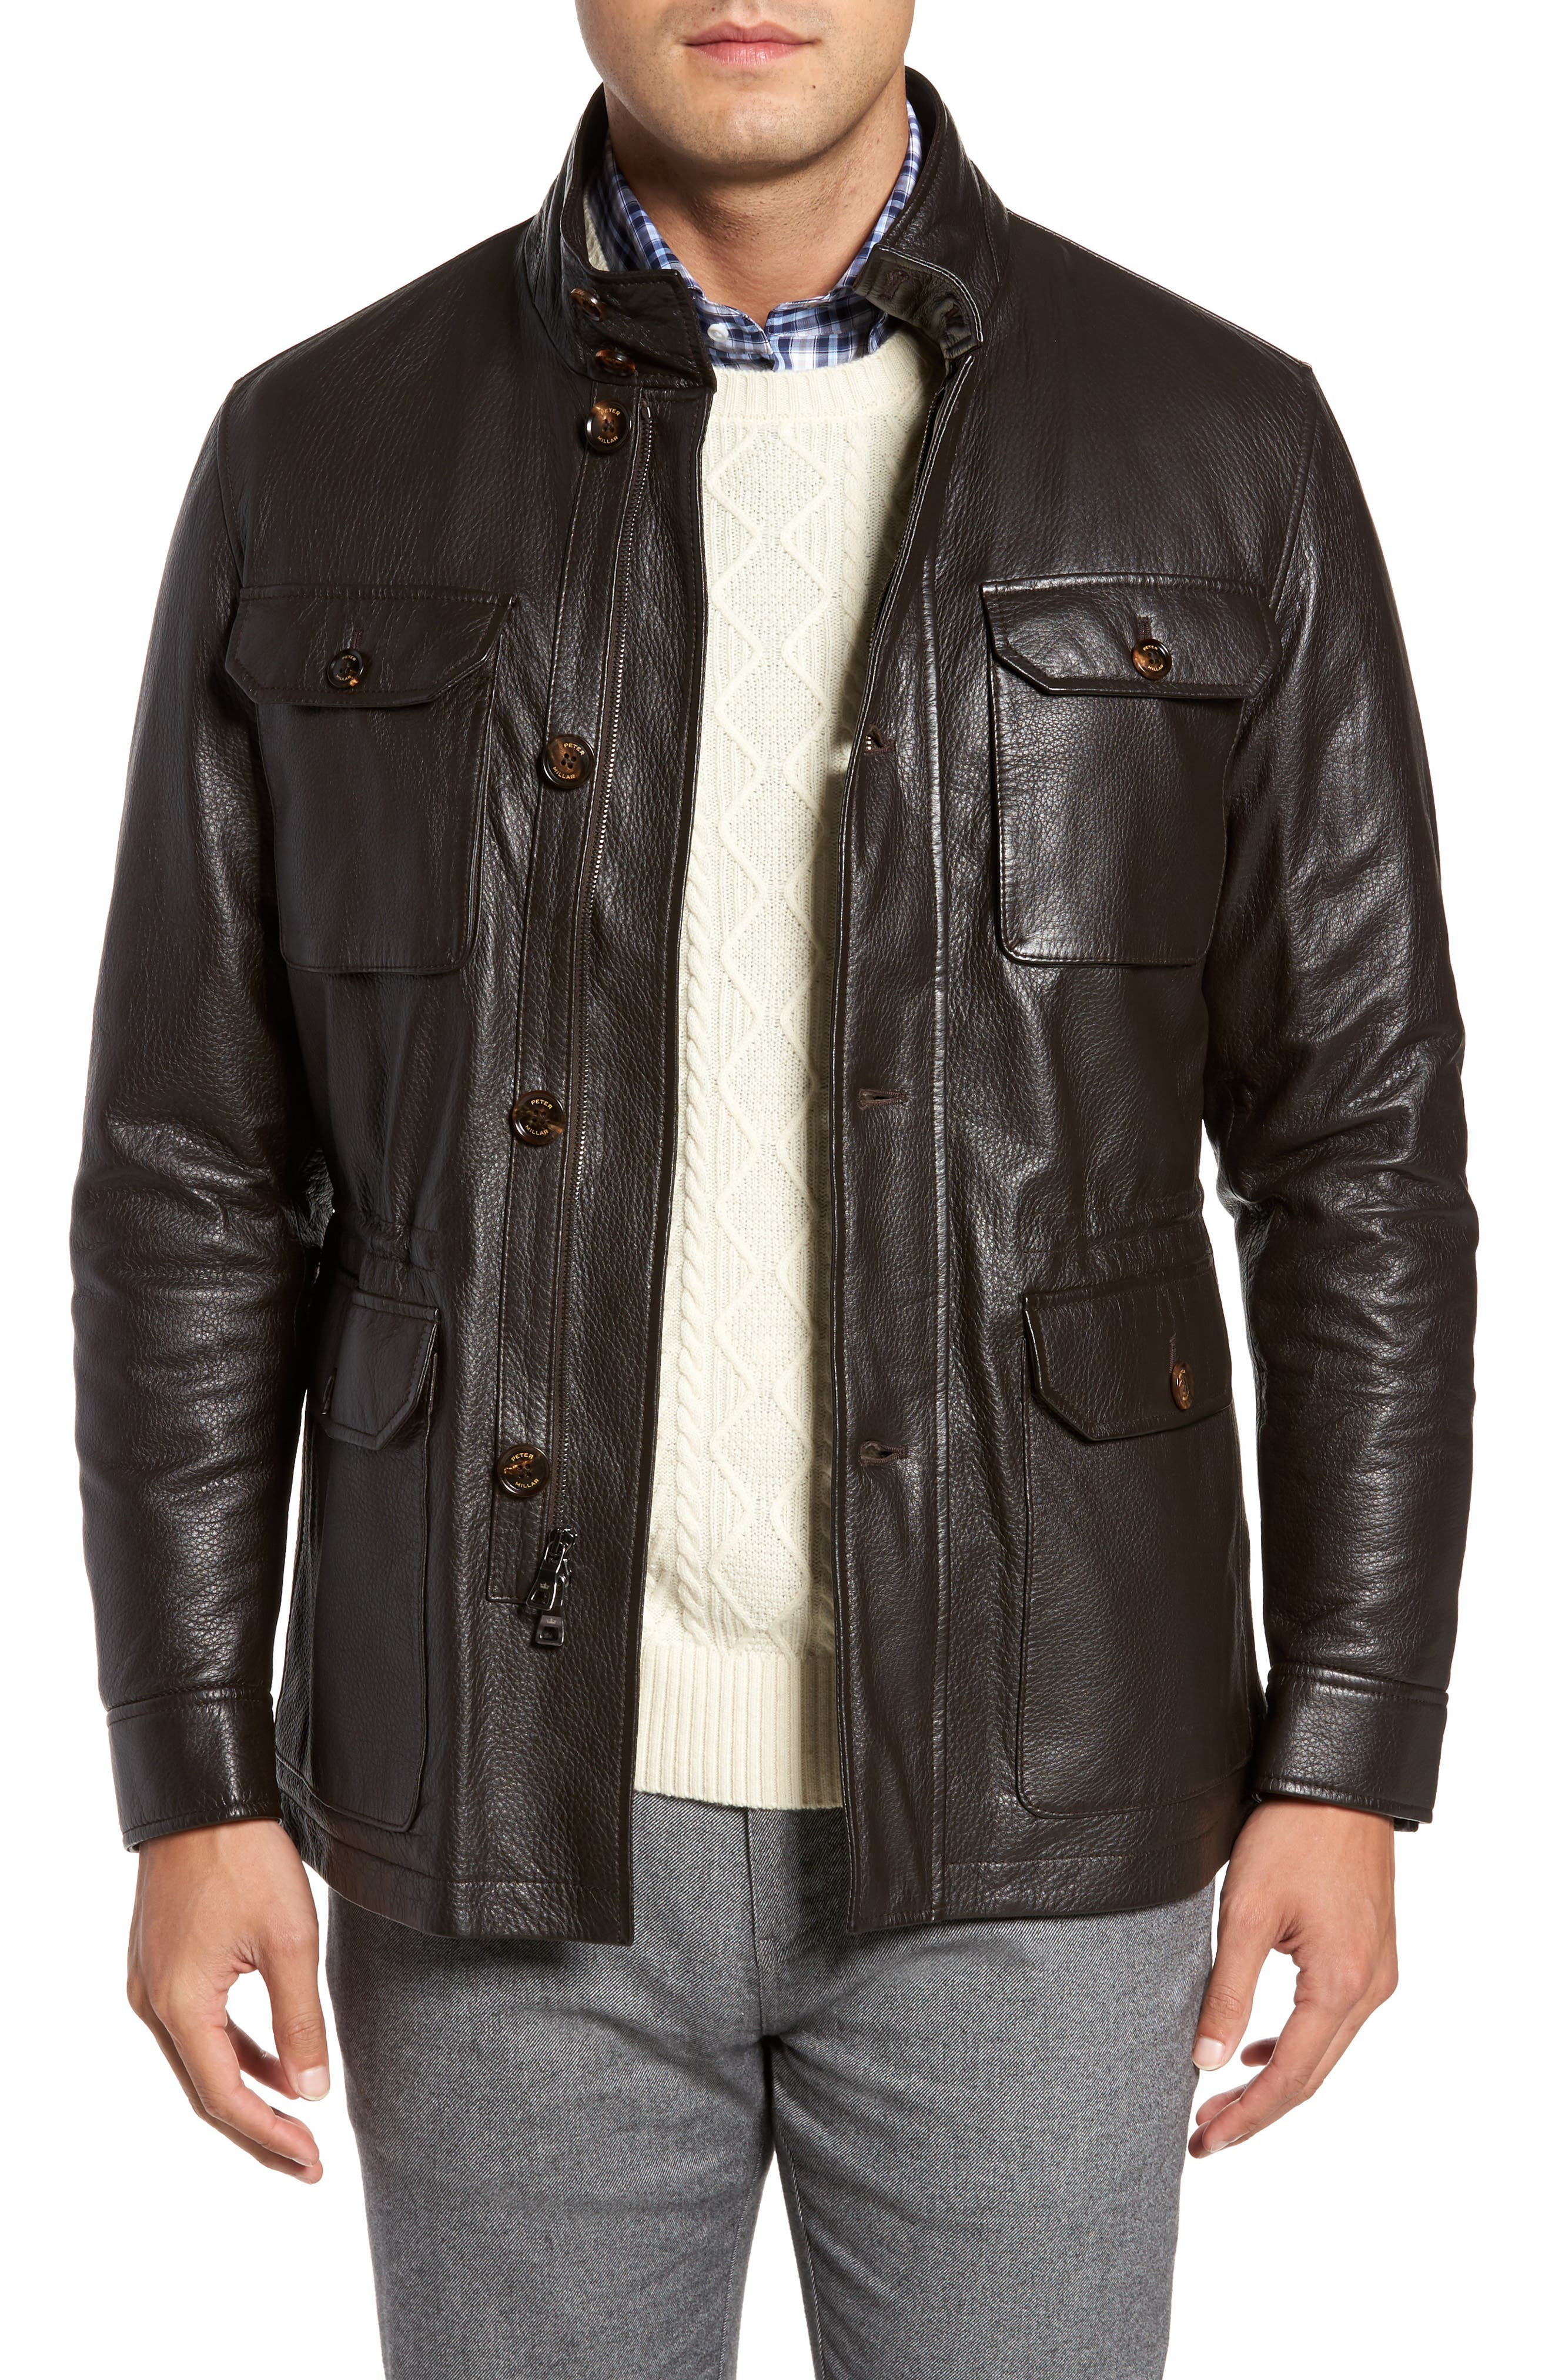 Woodland Discovery Deerskin Leather Jacket,                         Main,                         color, Espresso